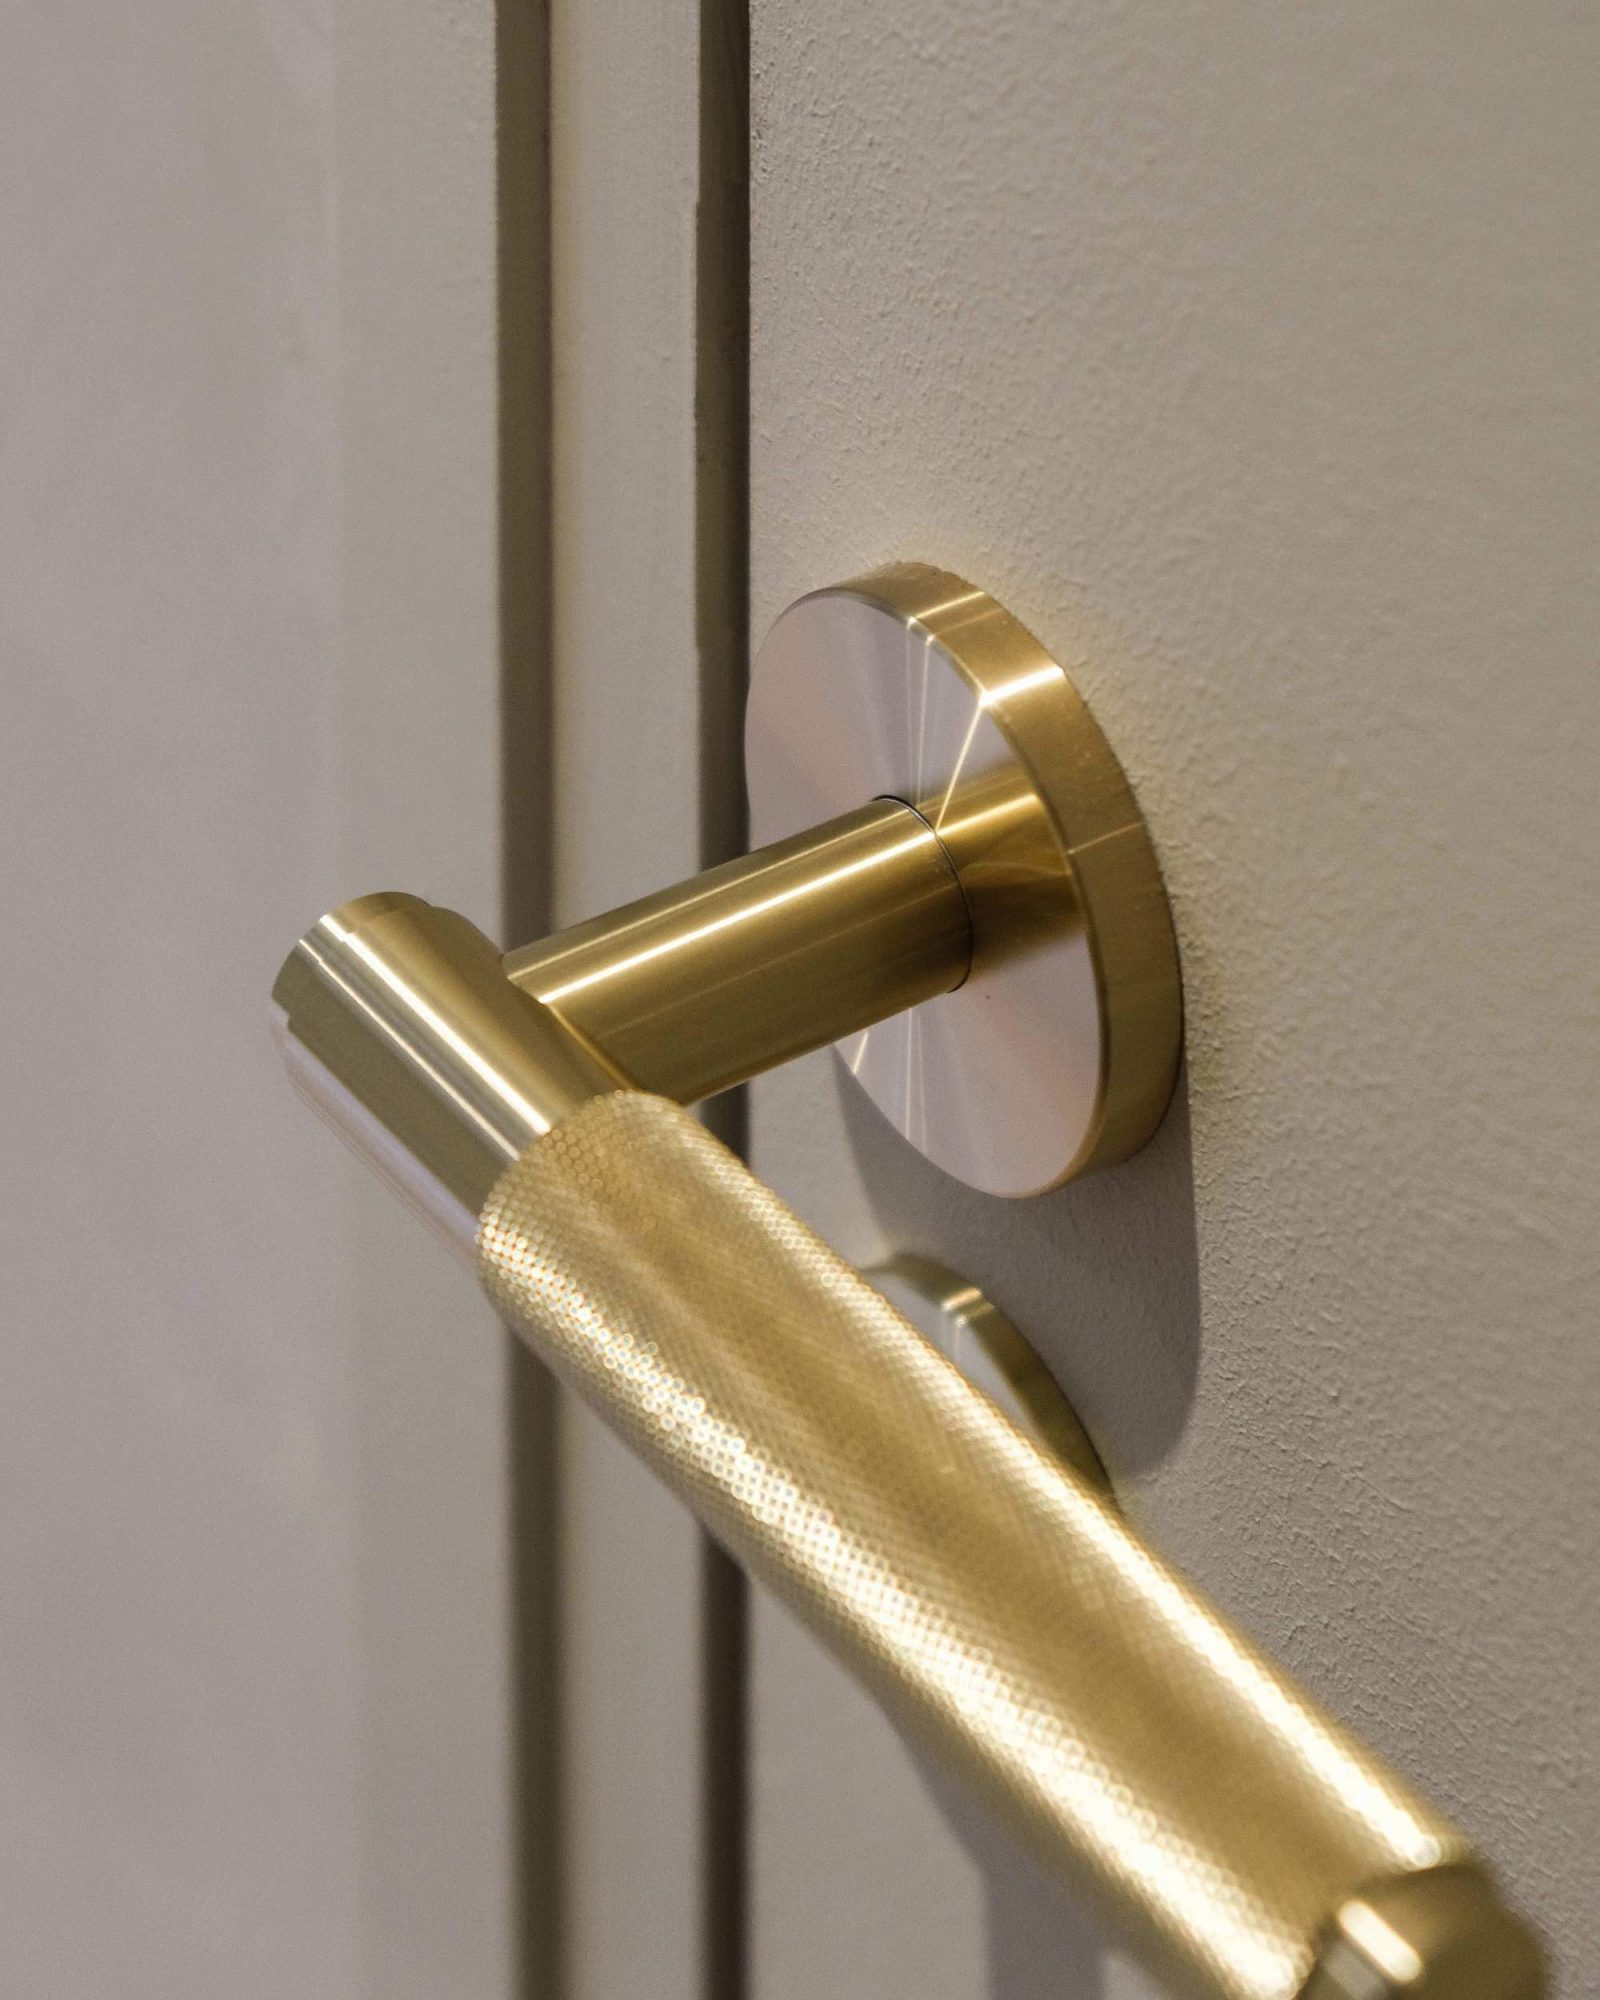 buster-and-punch-door-lever